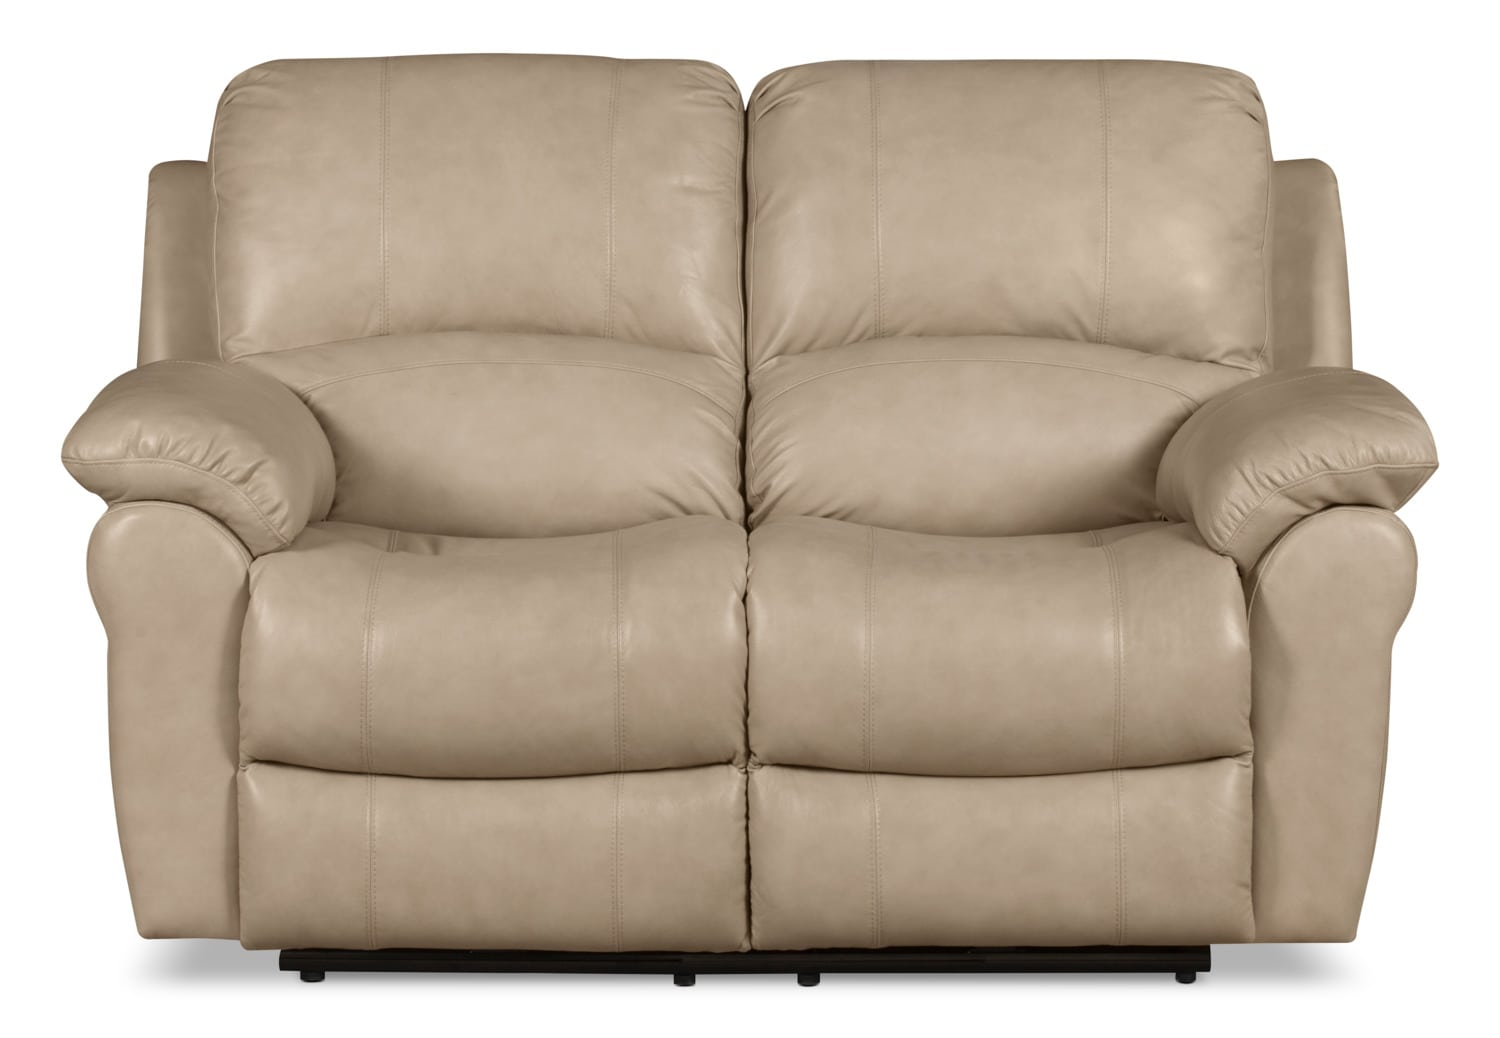 Kobe Genuine Leather Reclining Loveseat – Stone